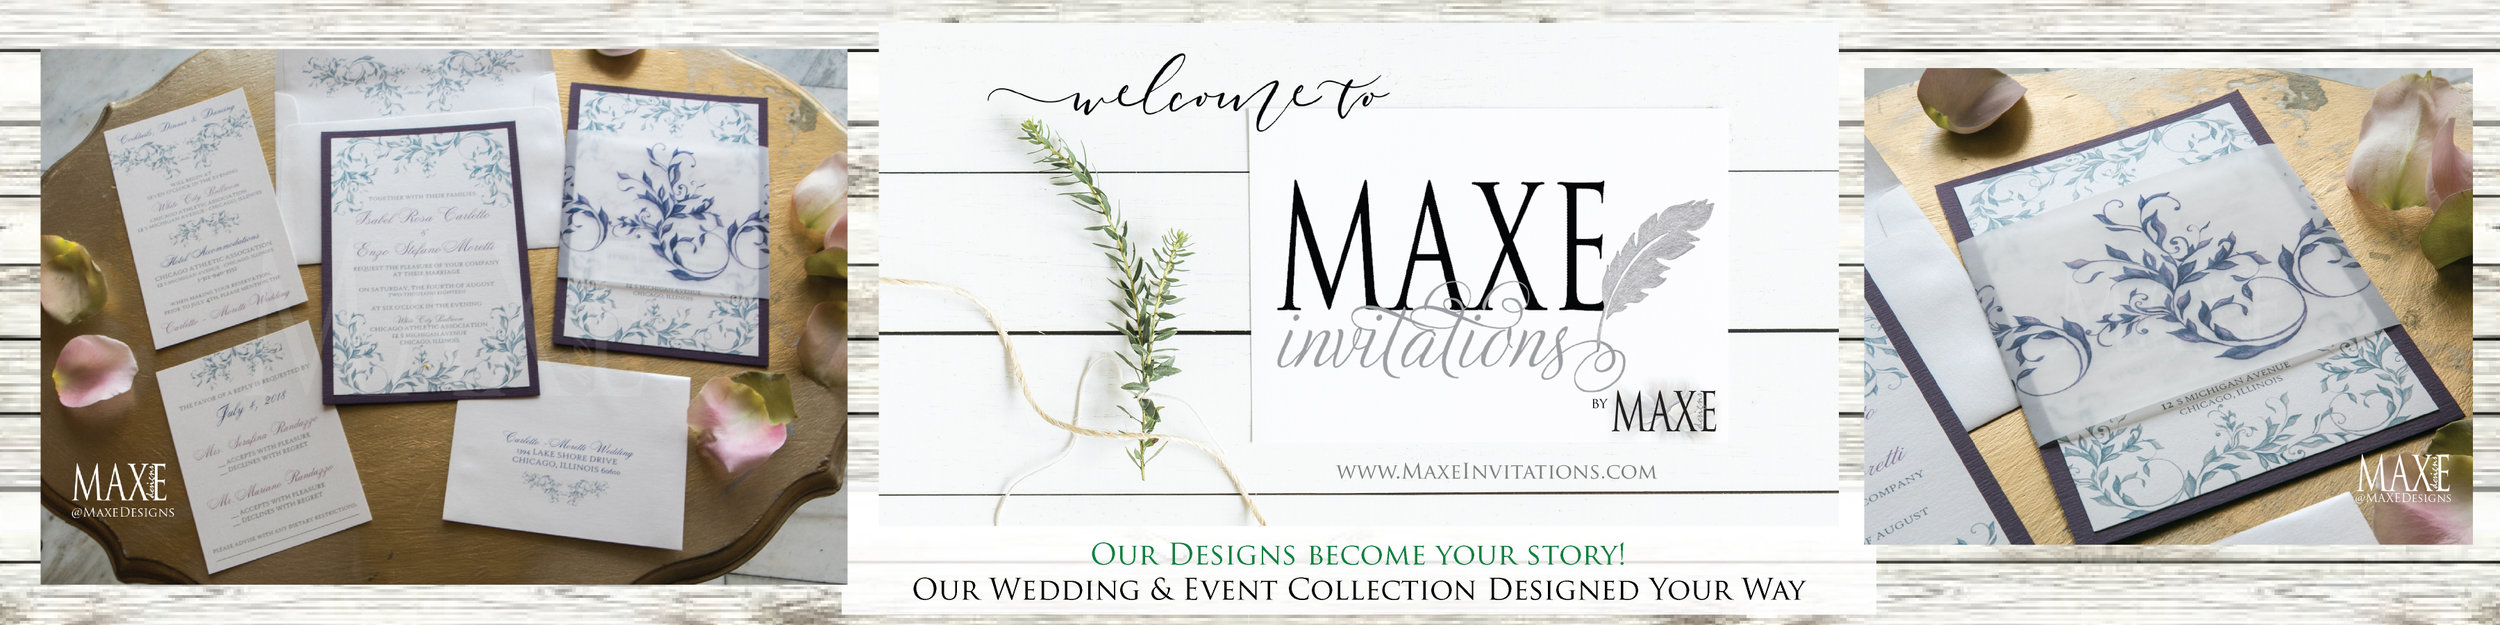 MAXE Invitation Designs are created to reflect you & your story! Call or email me today and let's get started on your amazing custom stationery designs!